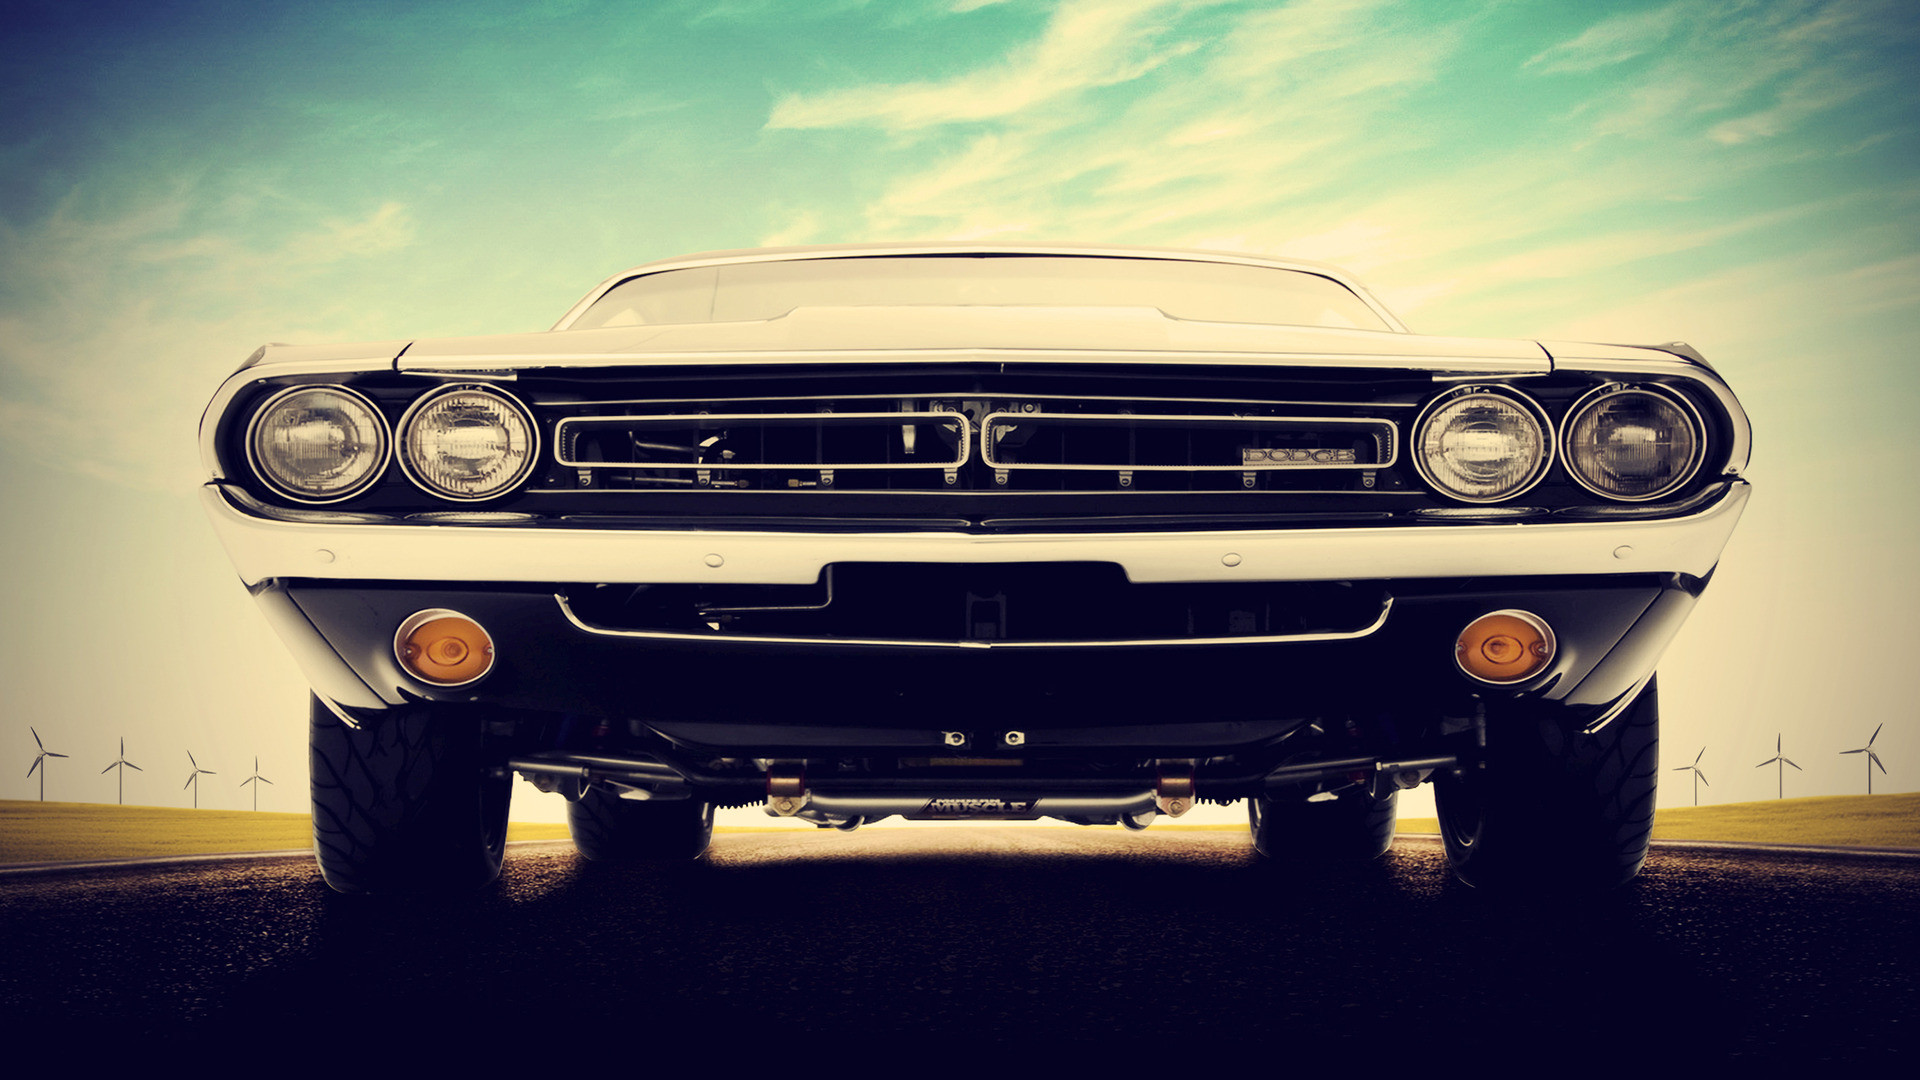 1970 Dodge Charger HD Background Wallpaper is hd wallpaper for desktop  background iphone, computer,